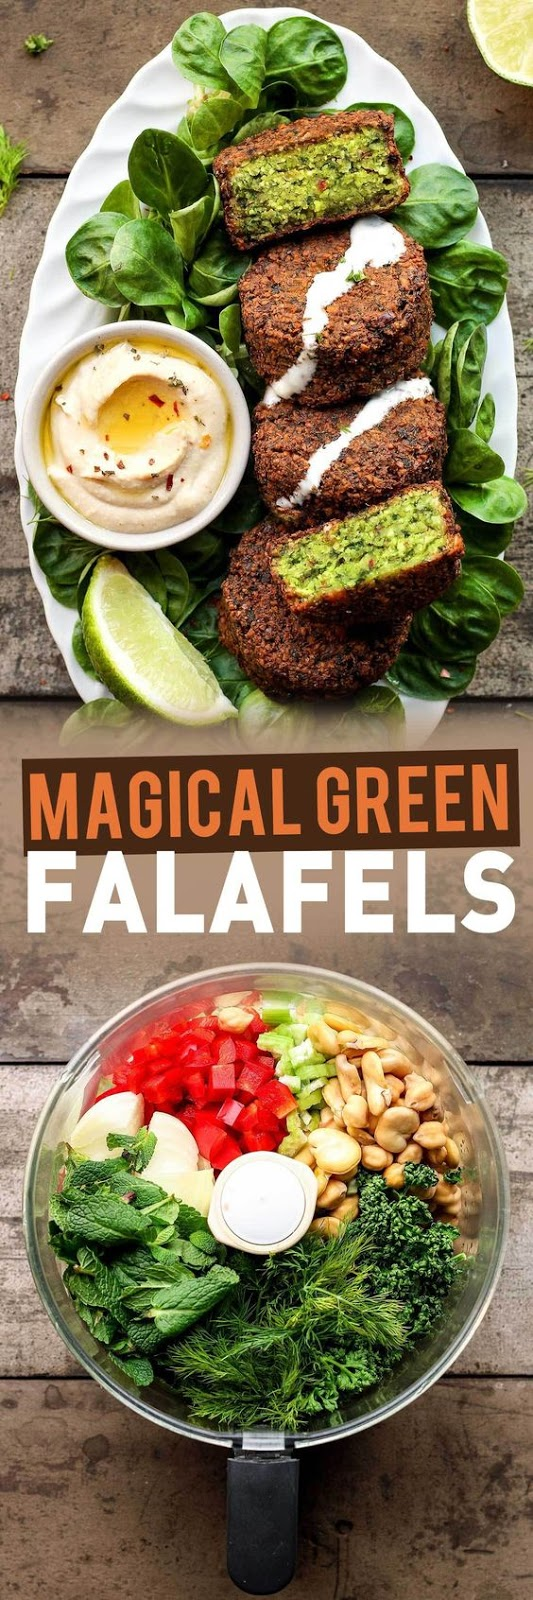 Magical Green Falafels(Vegetarian,Gluten free)